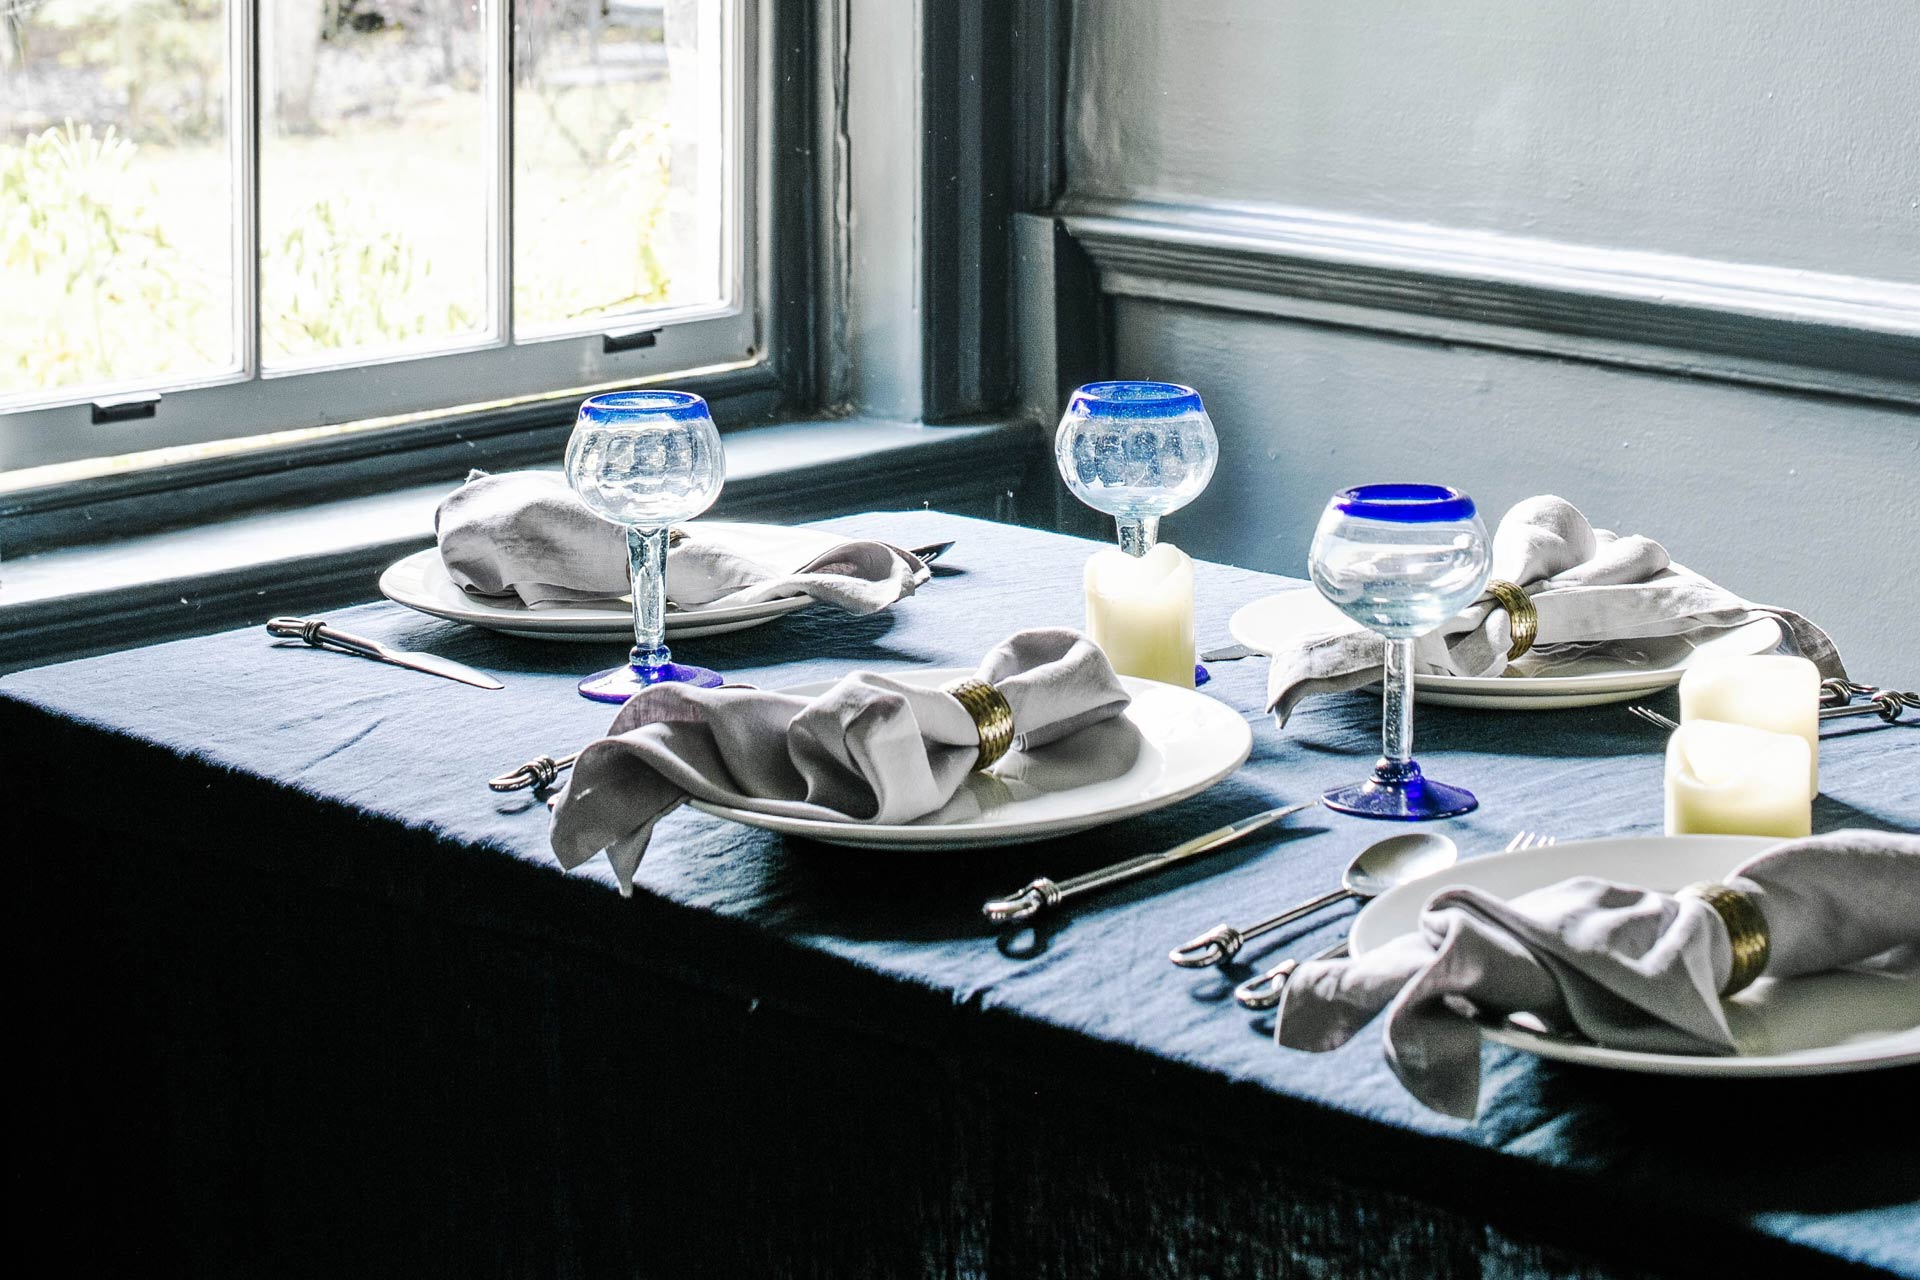 Tablescape by Piglet